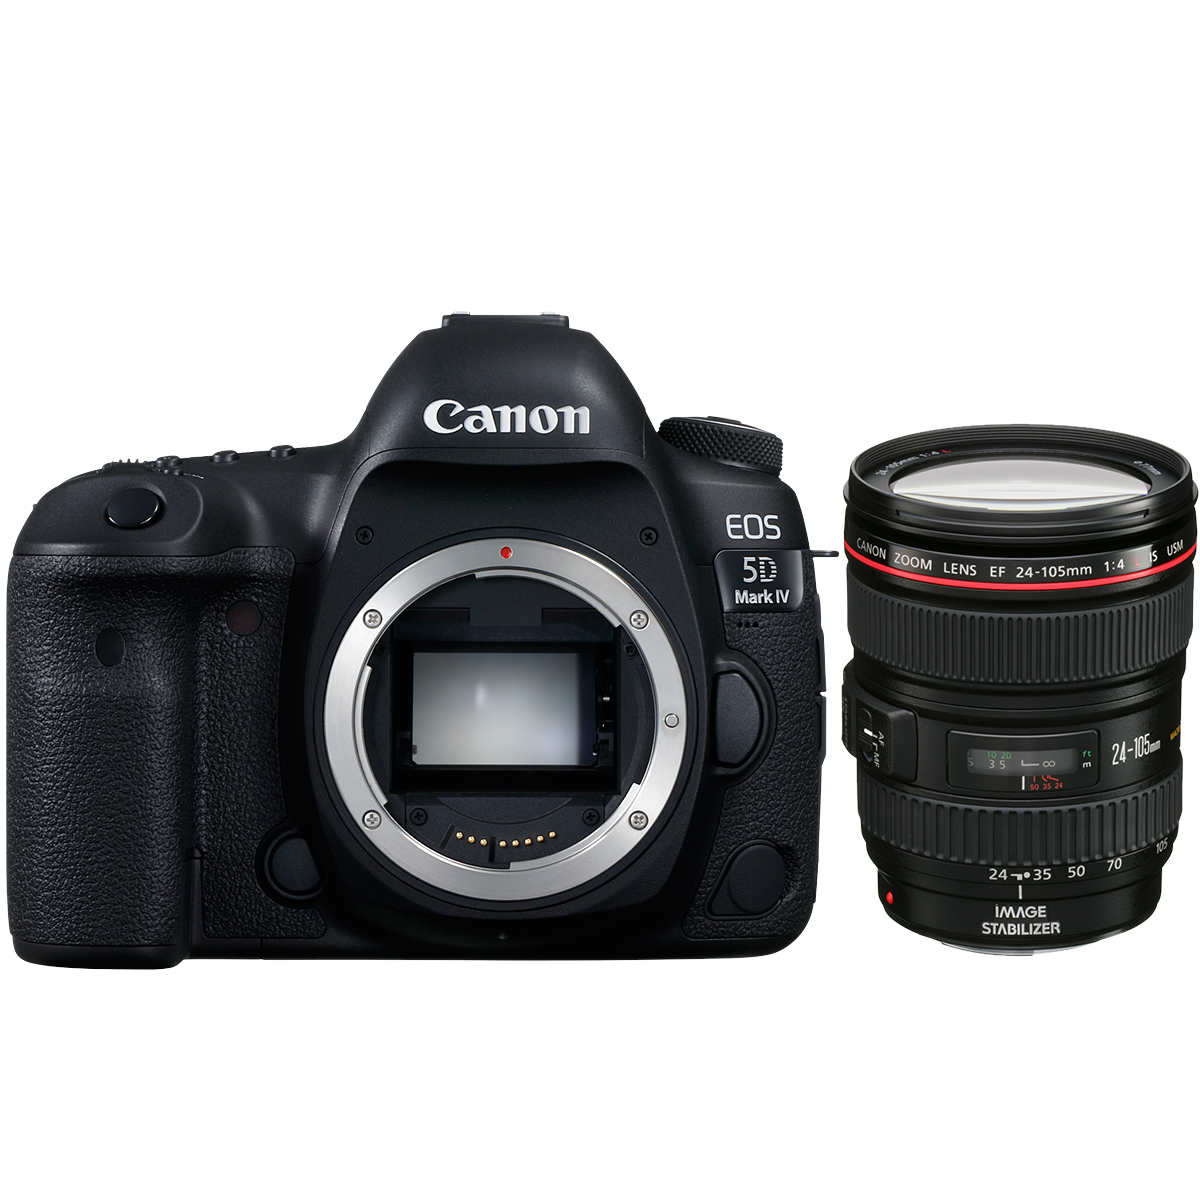 Canon EOS 5D Mark IV + EF 24-105mm 1:4,0 L IS II USM